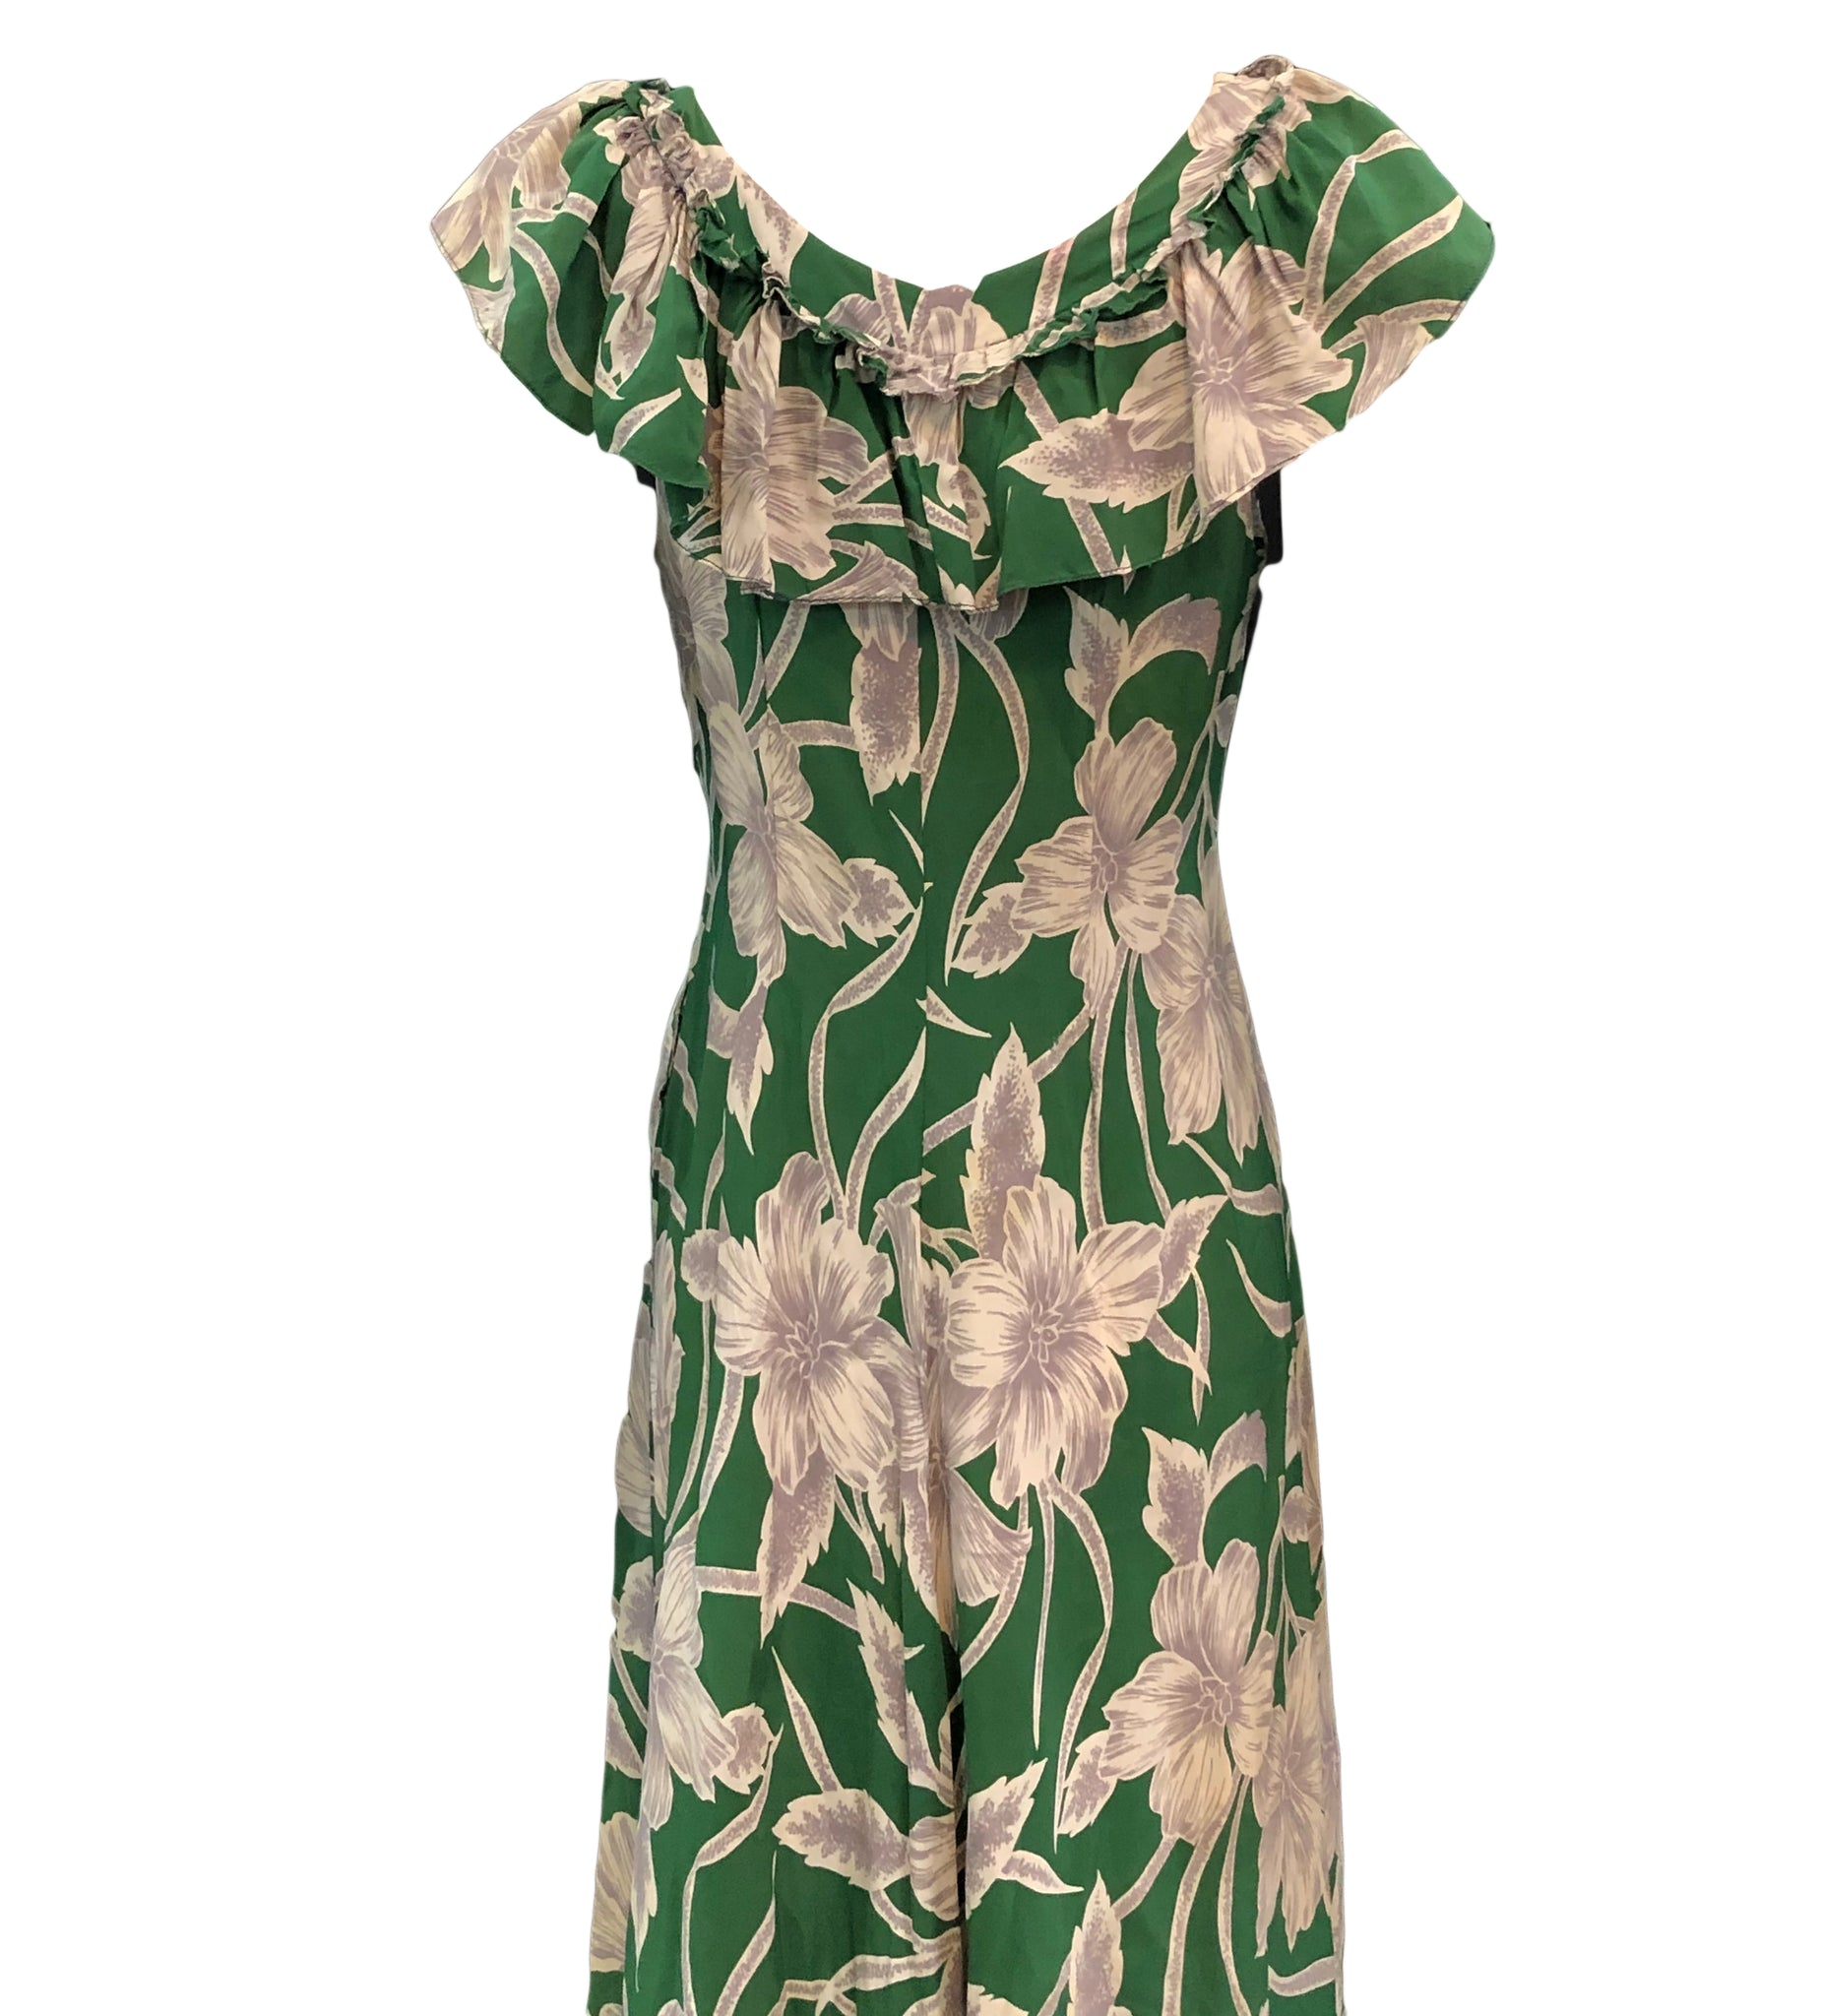 Incredible 1940s Green  Rayon Print Holoku Dress Detail A 4 of 7